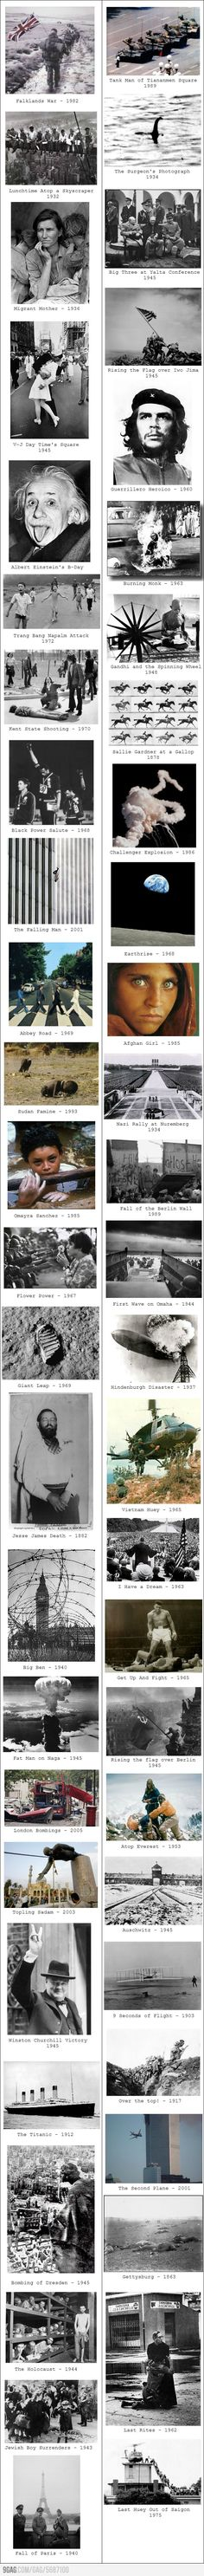 Iconic Pictures of the World. I want to take some amazing photos one day.